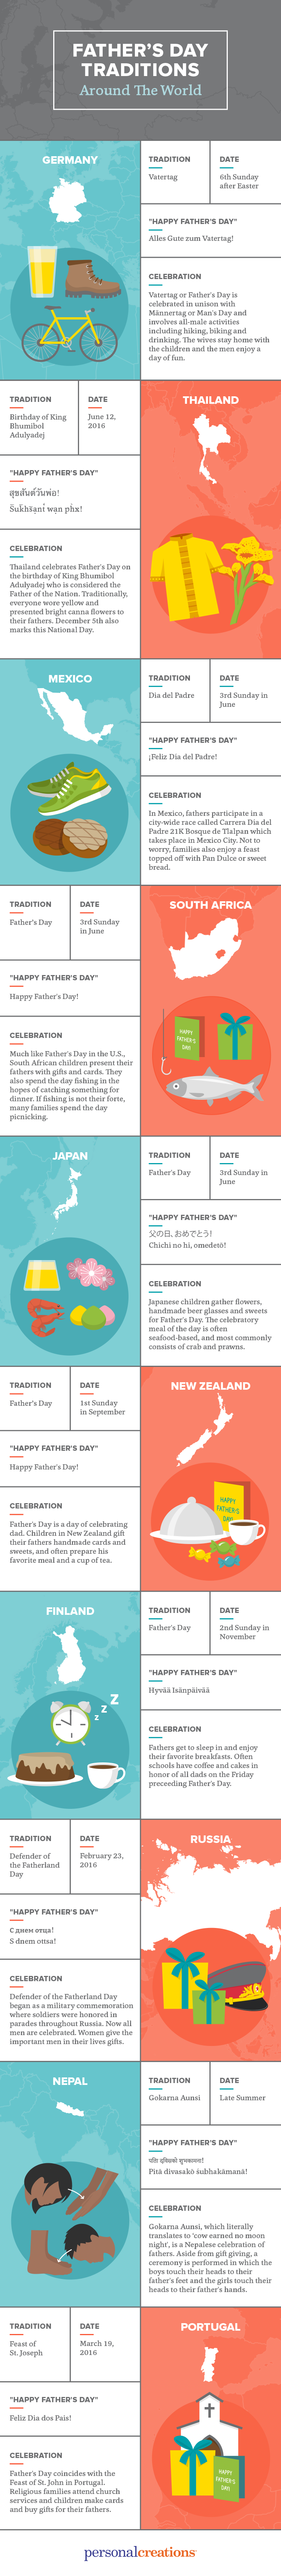 fathers day traditions around the world